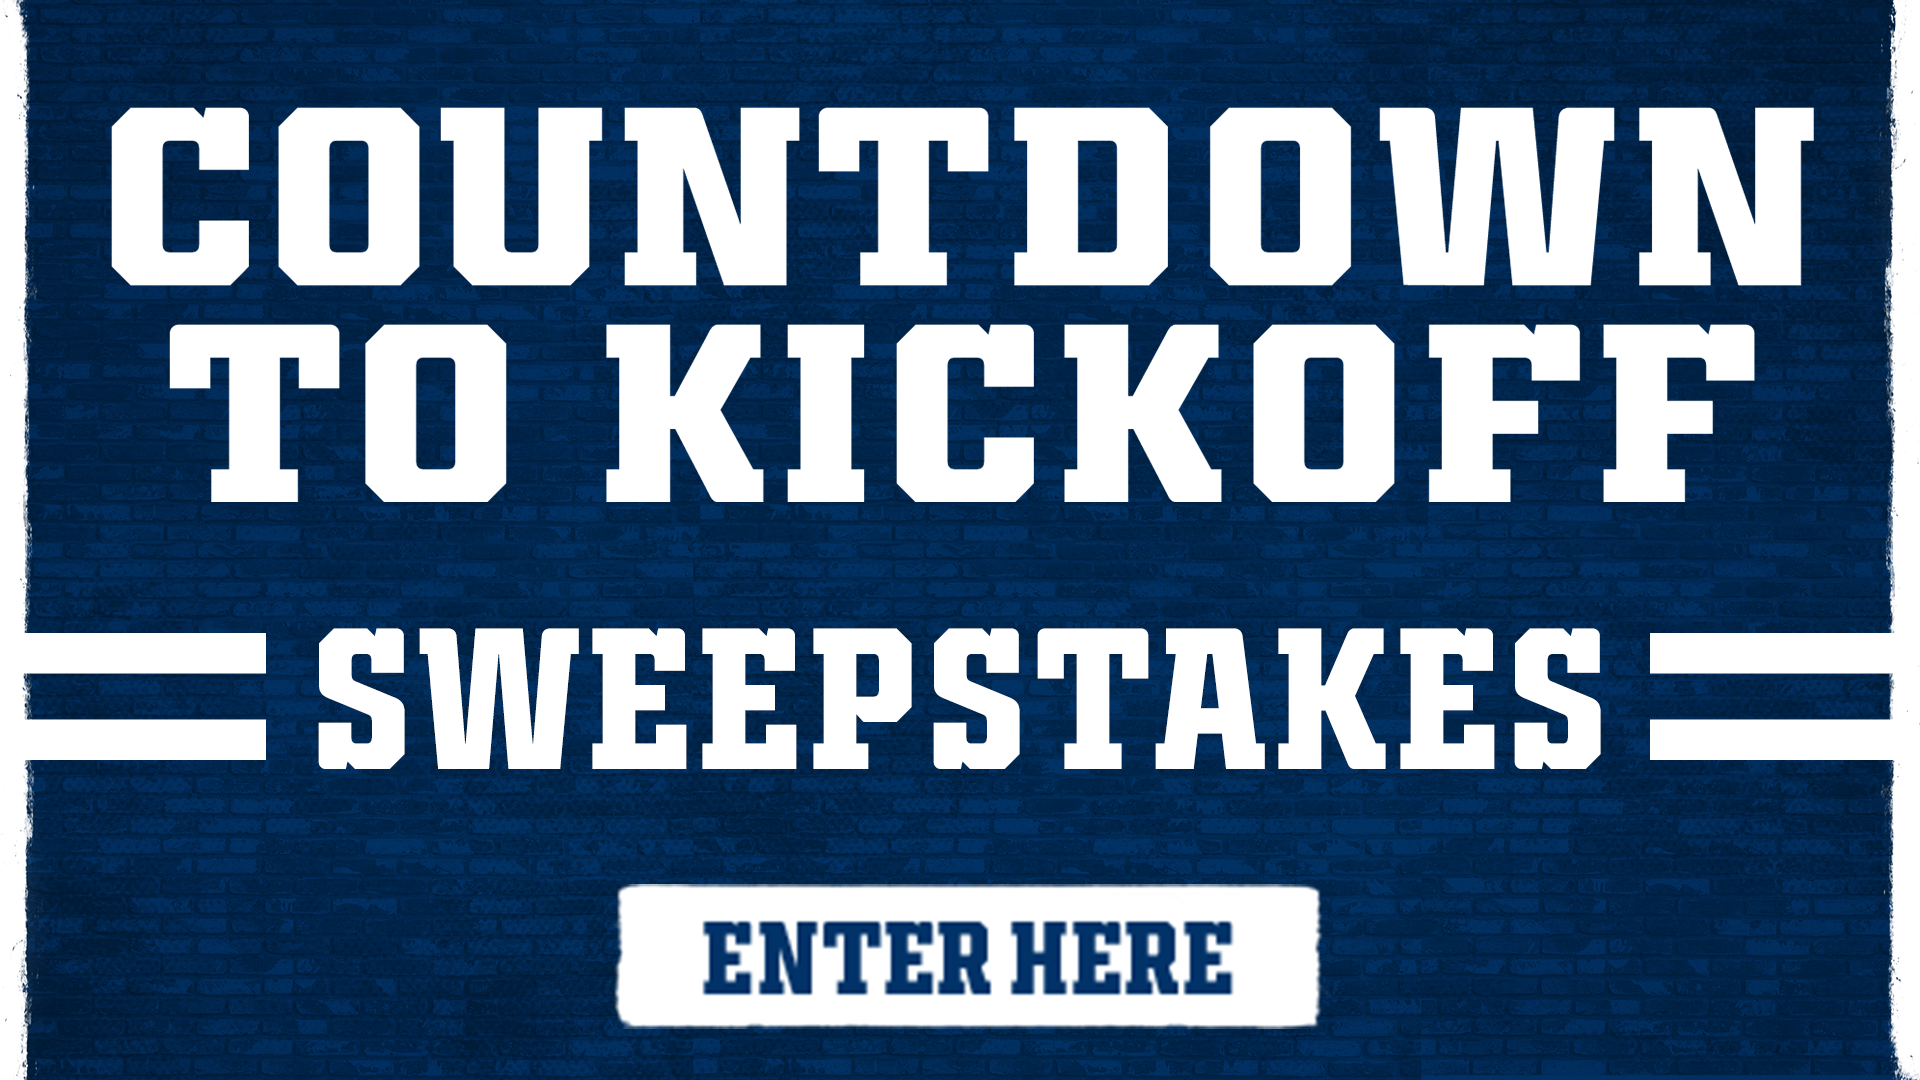 Countdown to Kickoff Sweepstakes